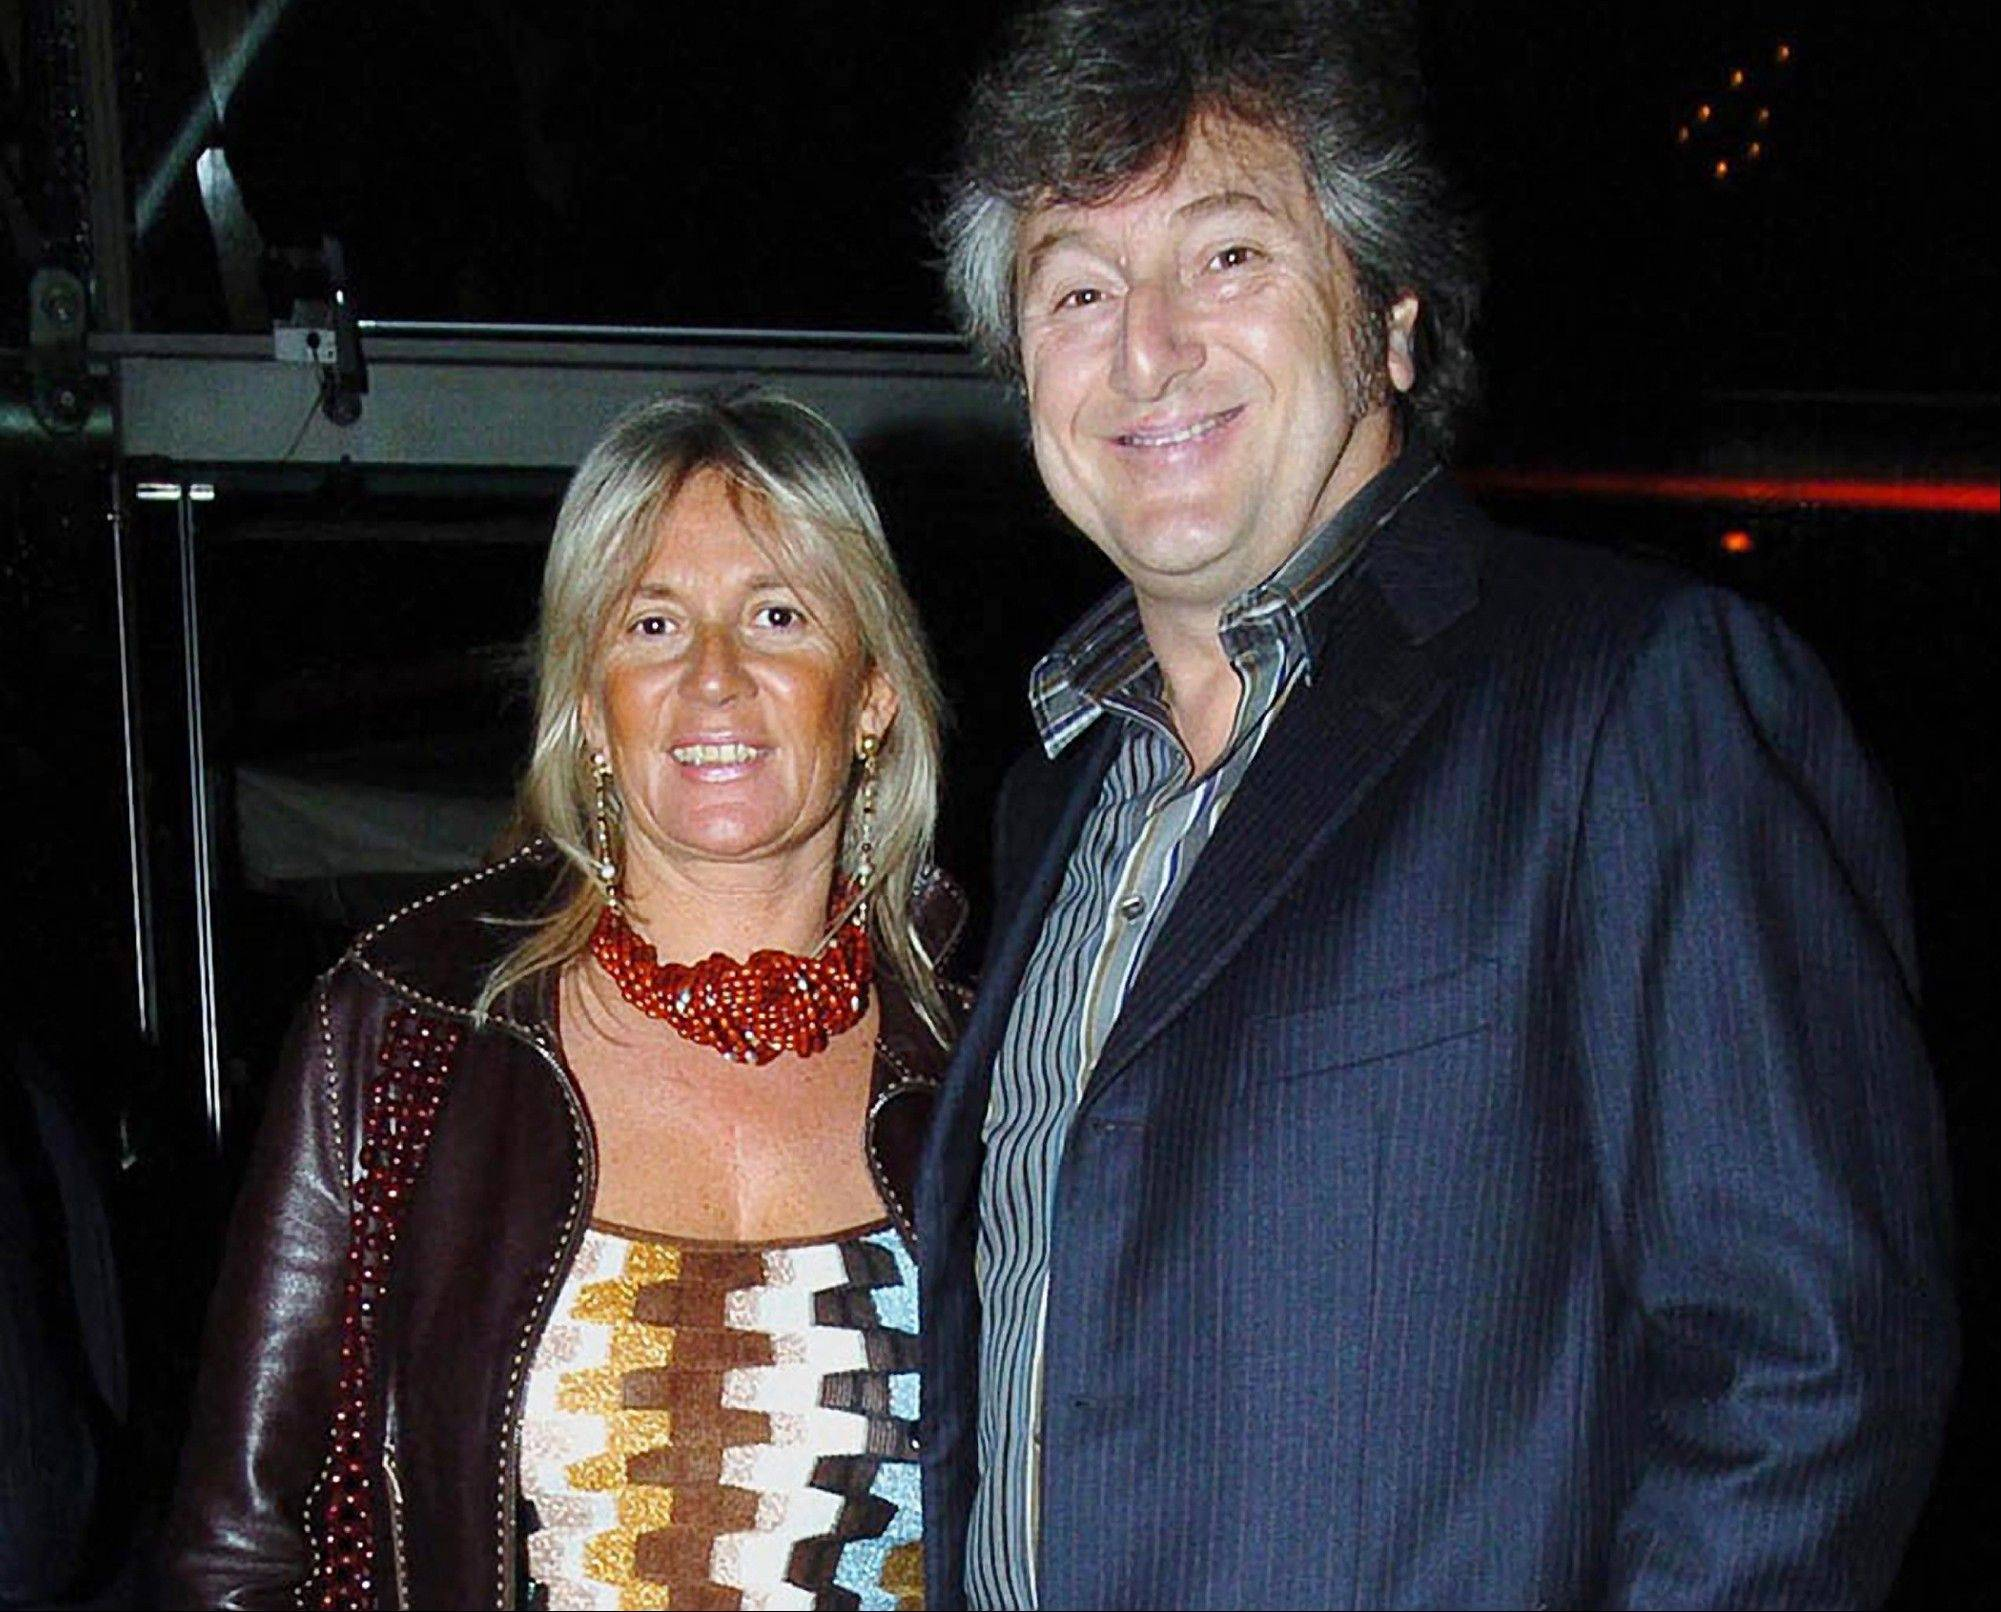 Vittorio Missoni, right, and his wife Maurizia Castiglioni smile in Milan, Italy.